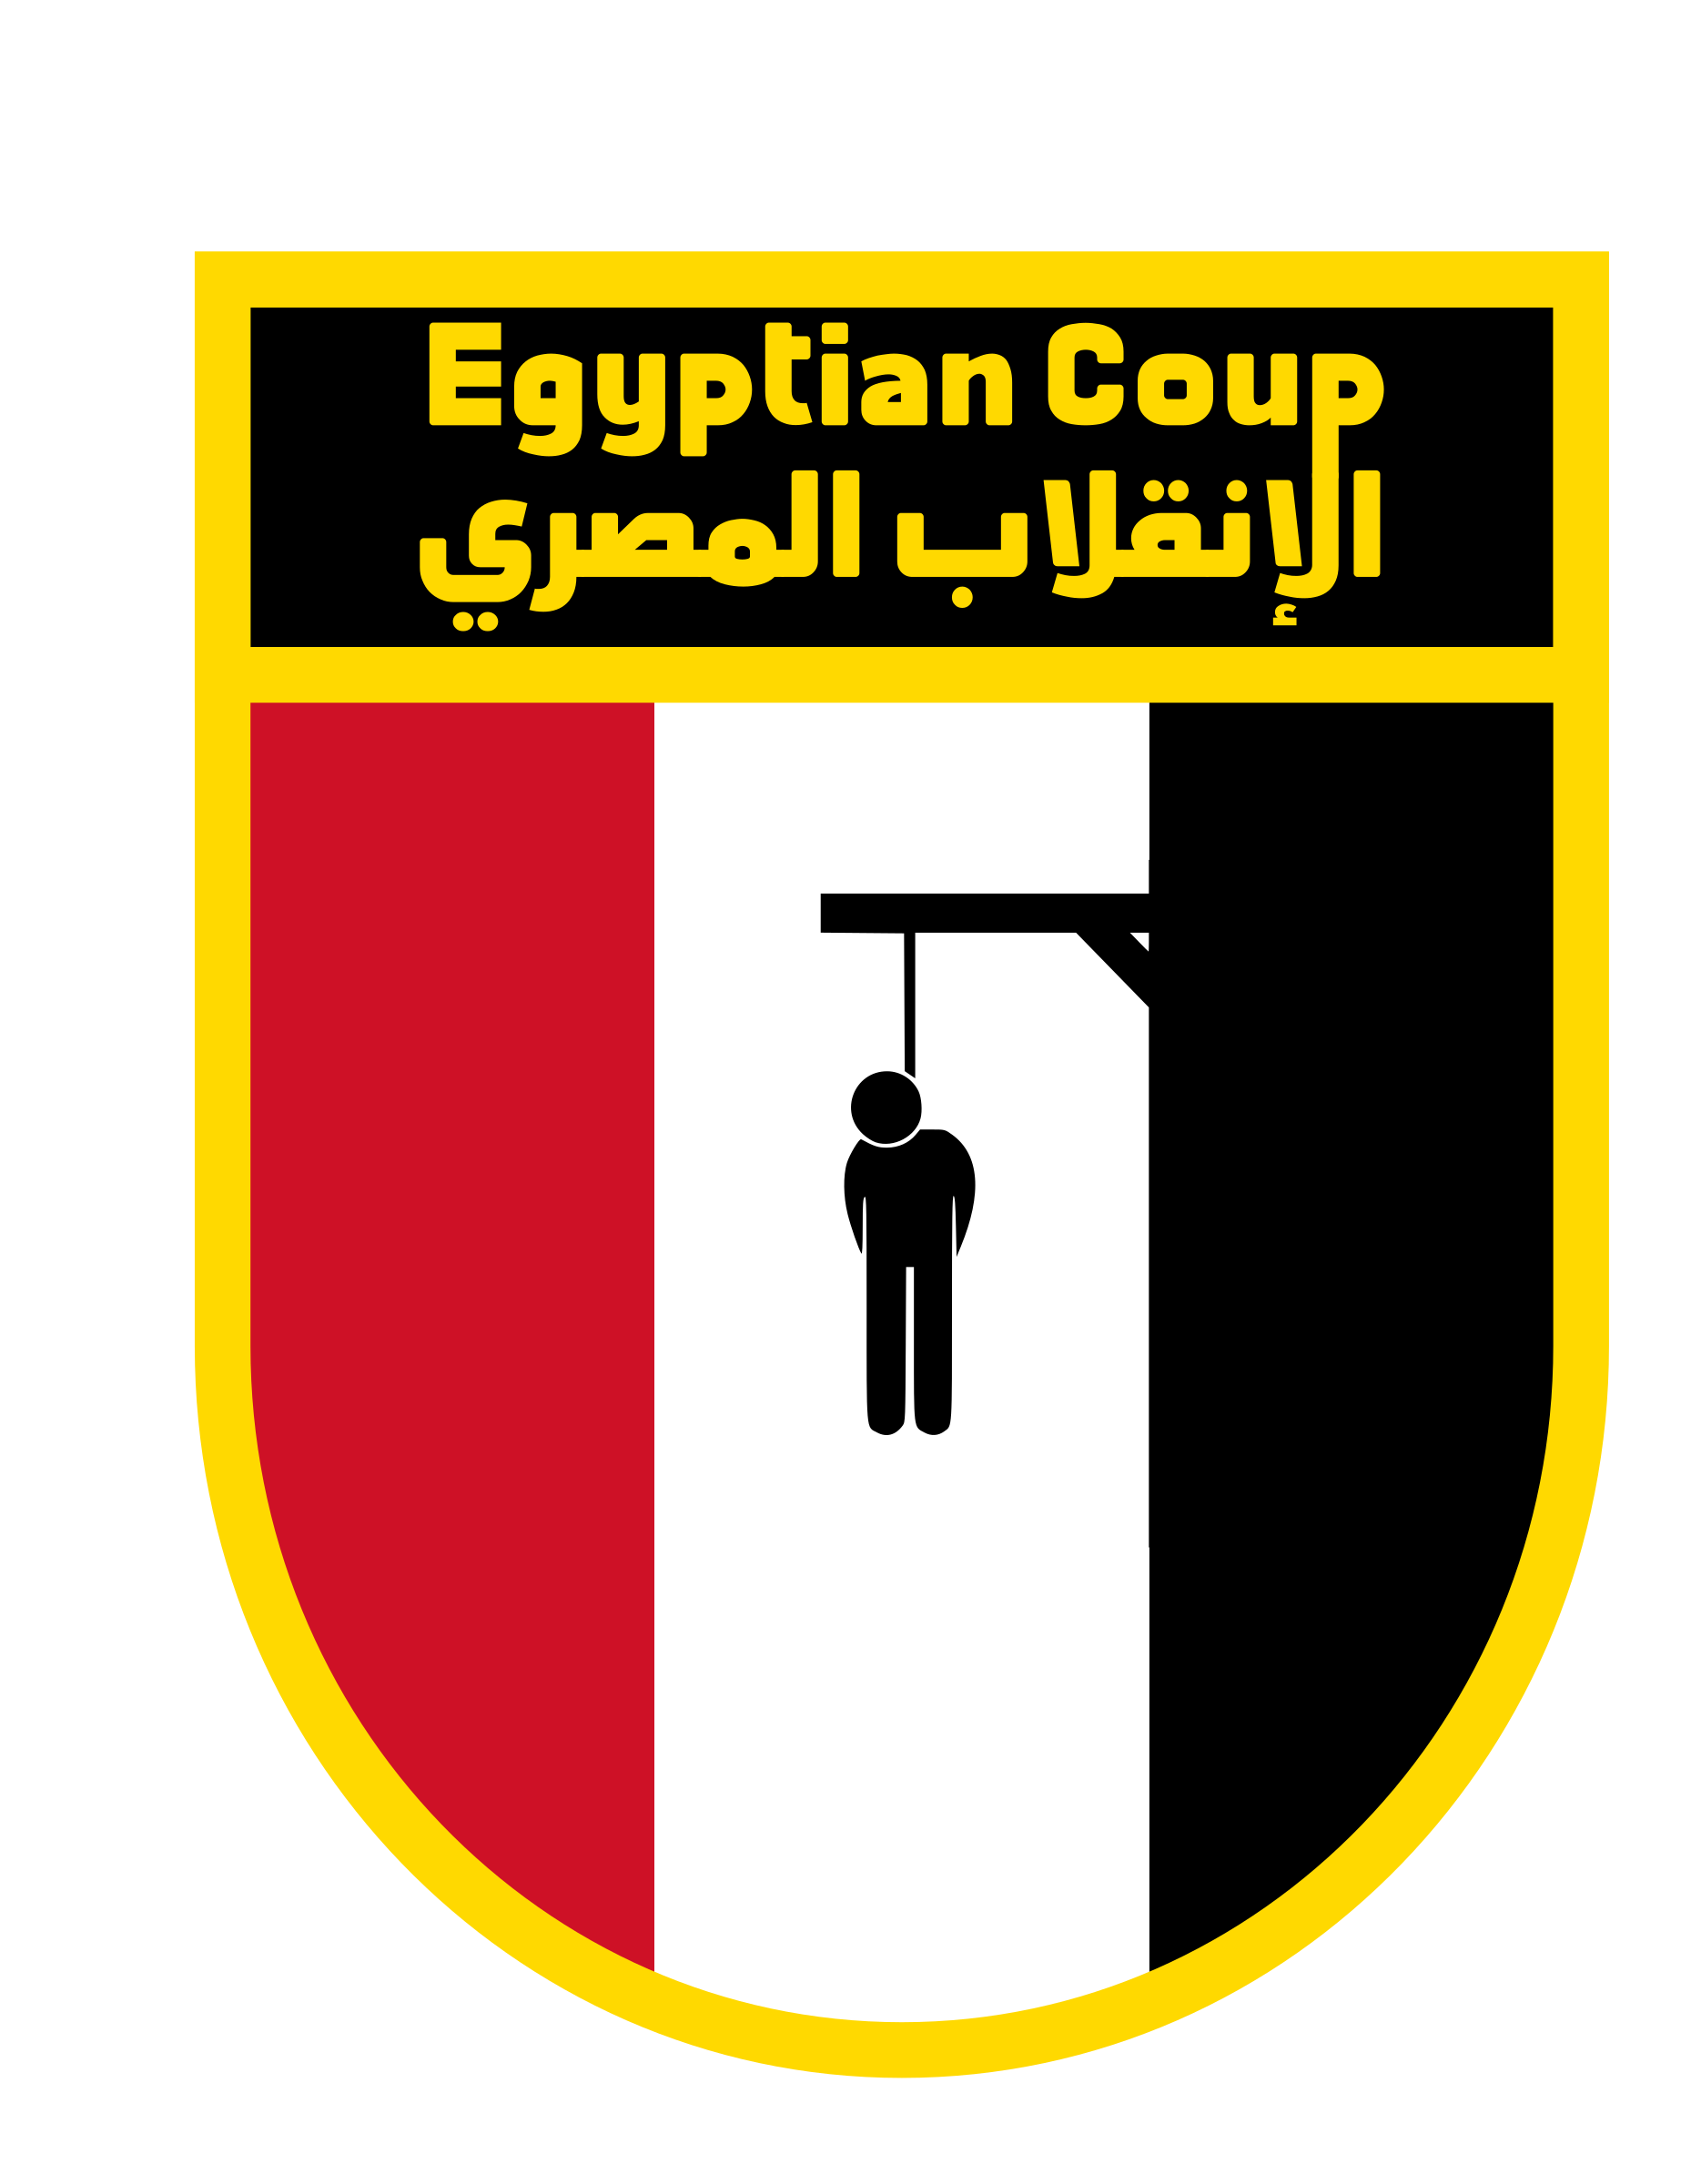 Egyptian Coup by Balaha